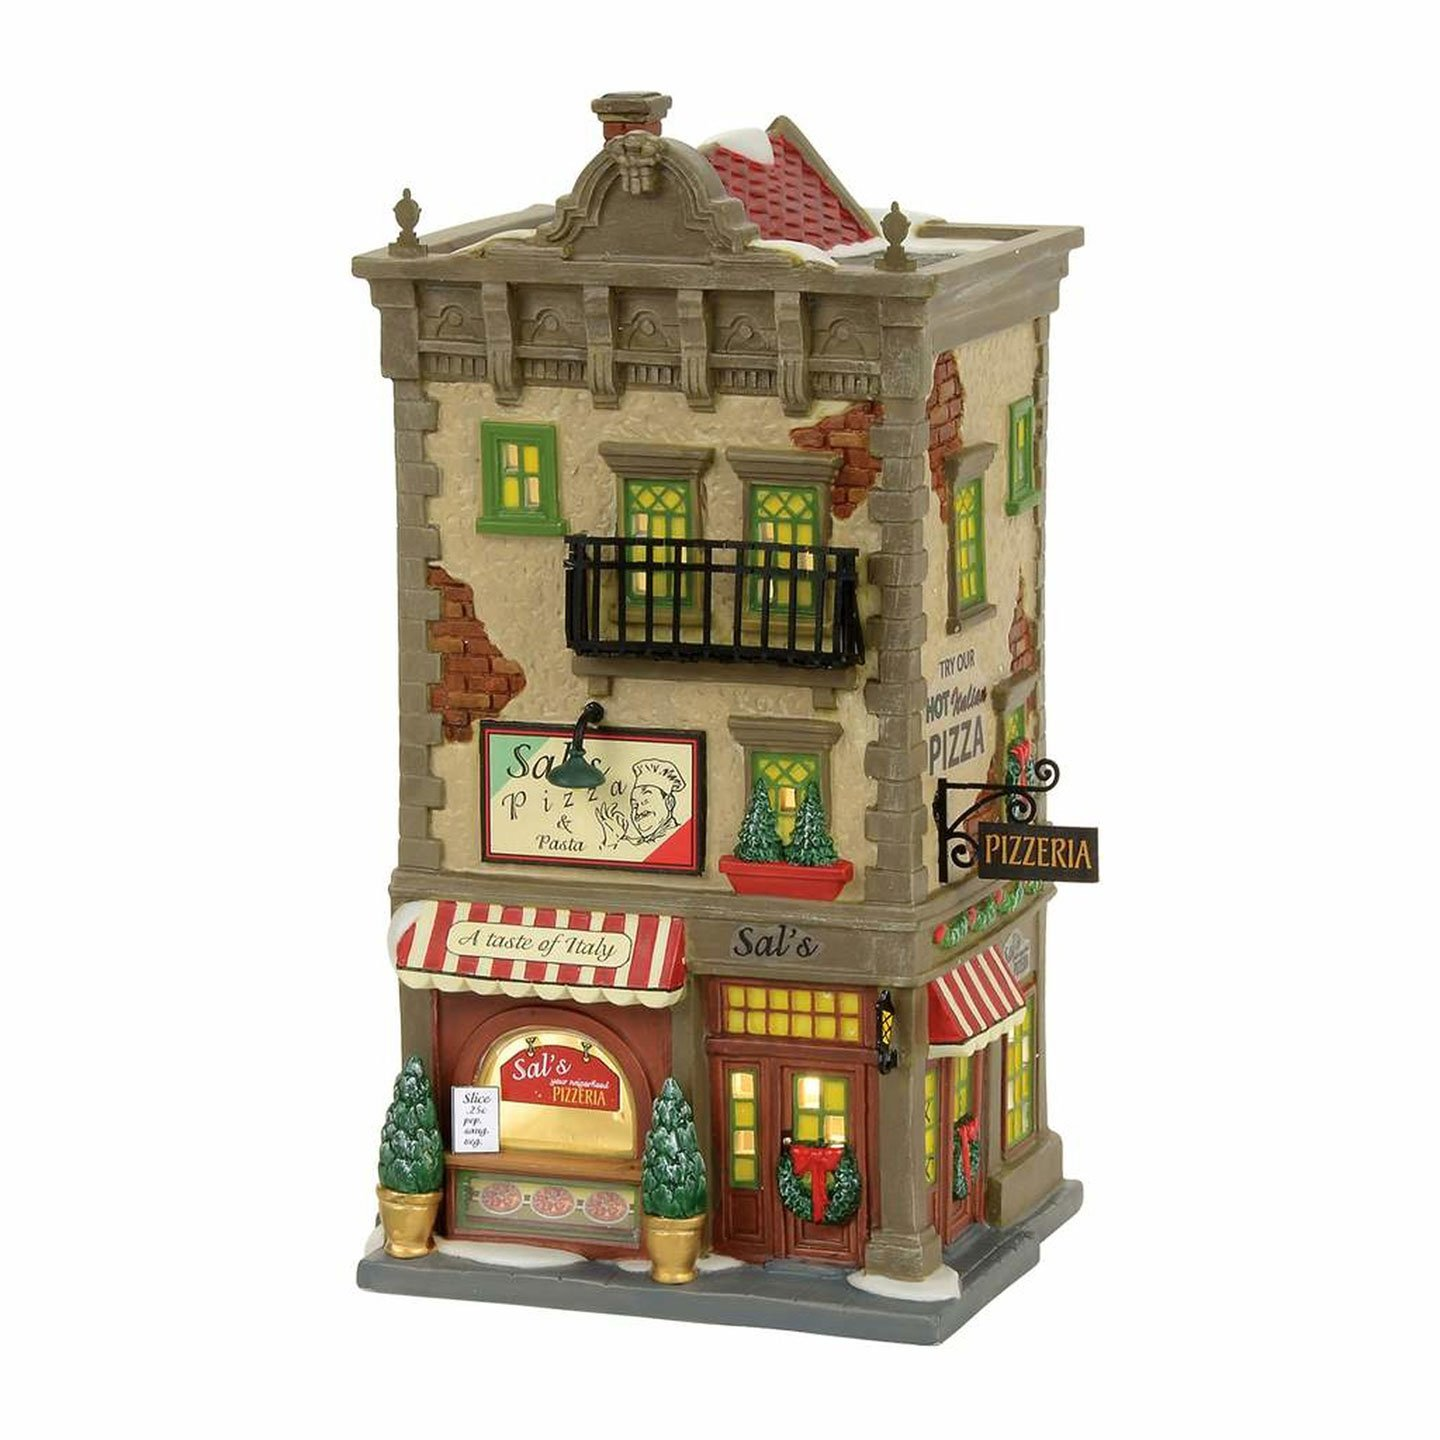 Department 56, Christmas in the City Sal's Pizza & Pasta by Department 56